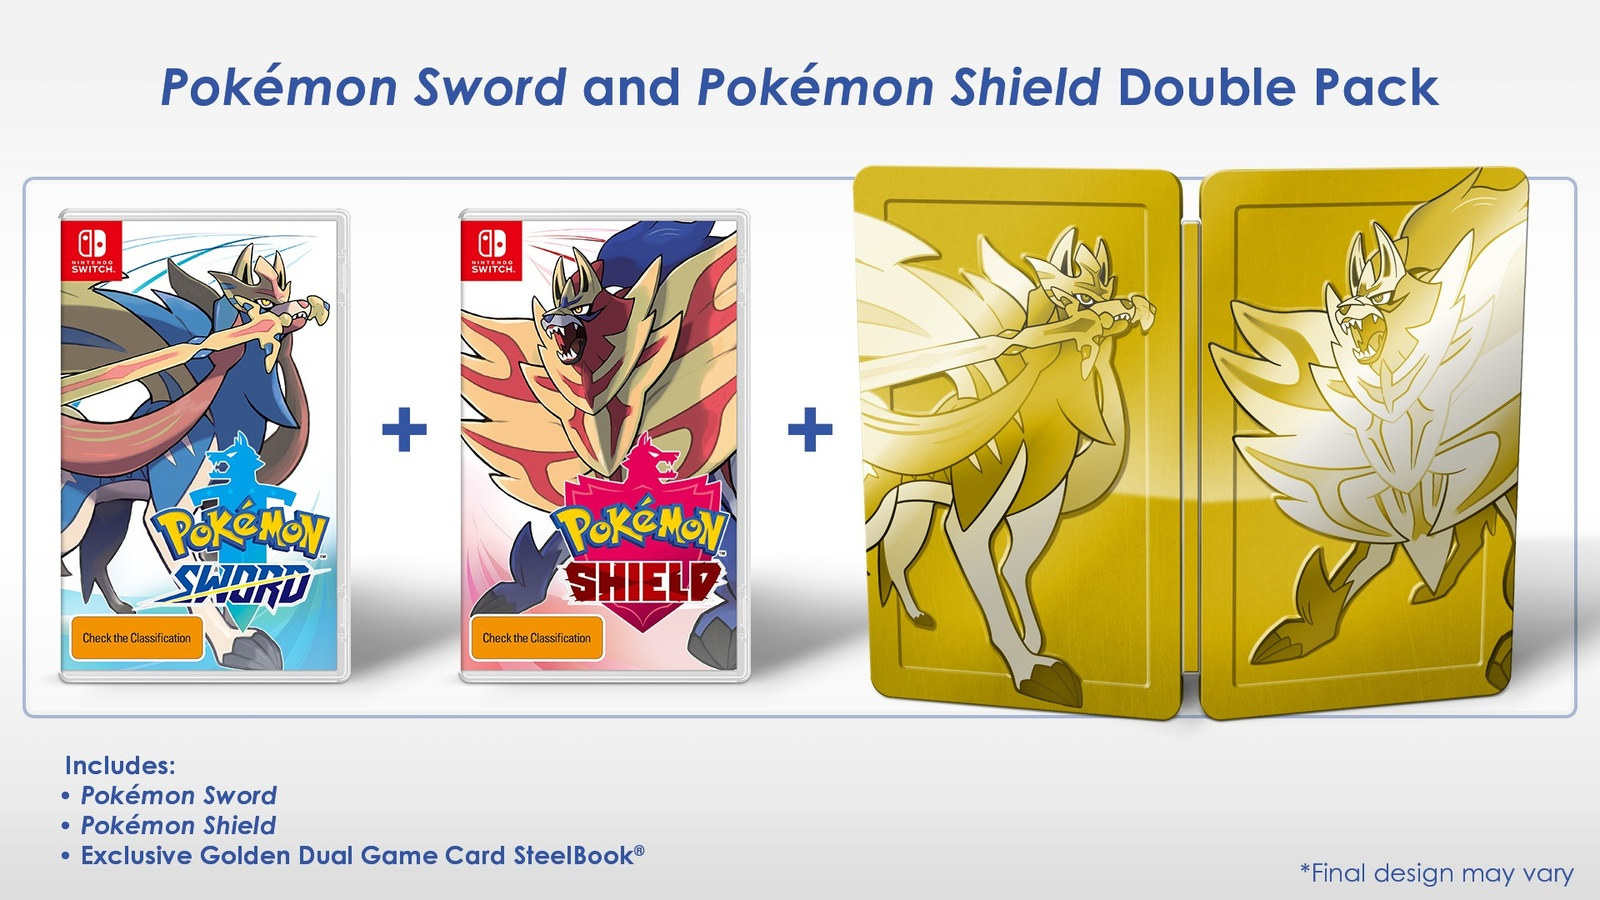 Pokemon Sword and Pokemon Shield Double Pack for Switch image